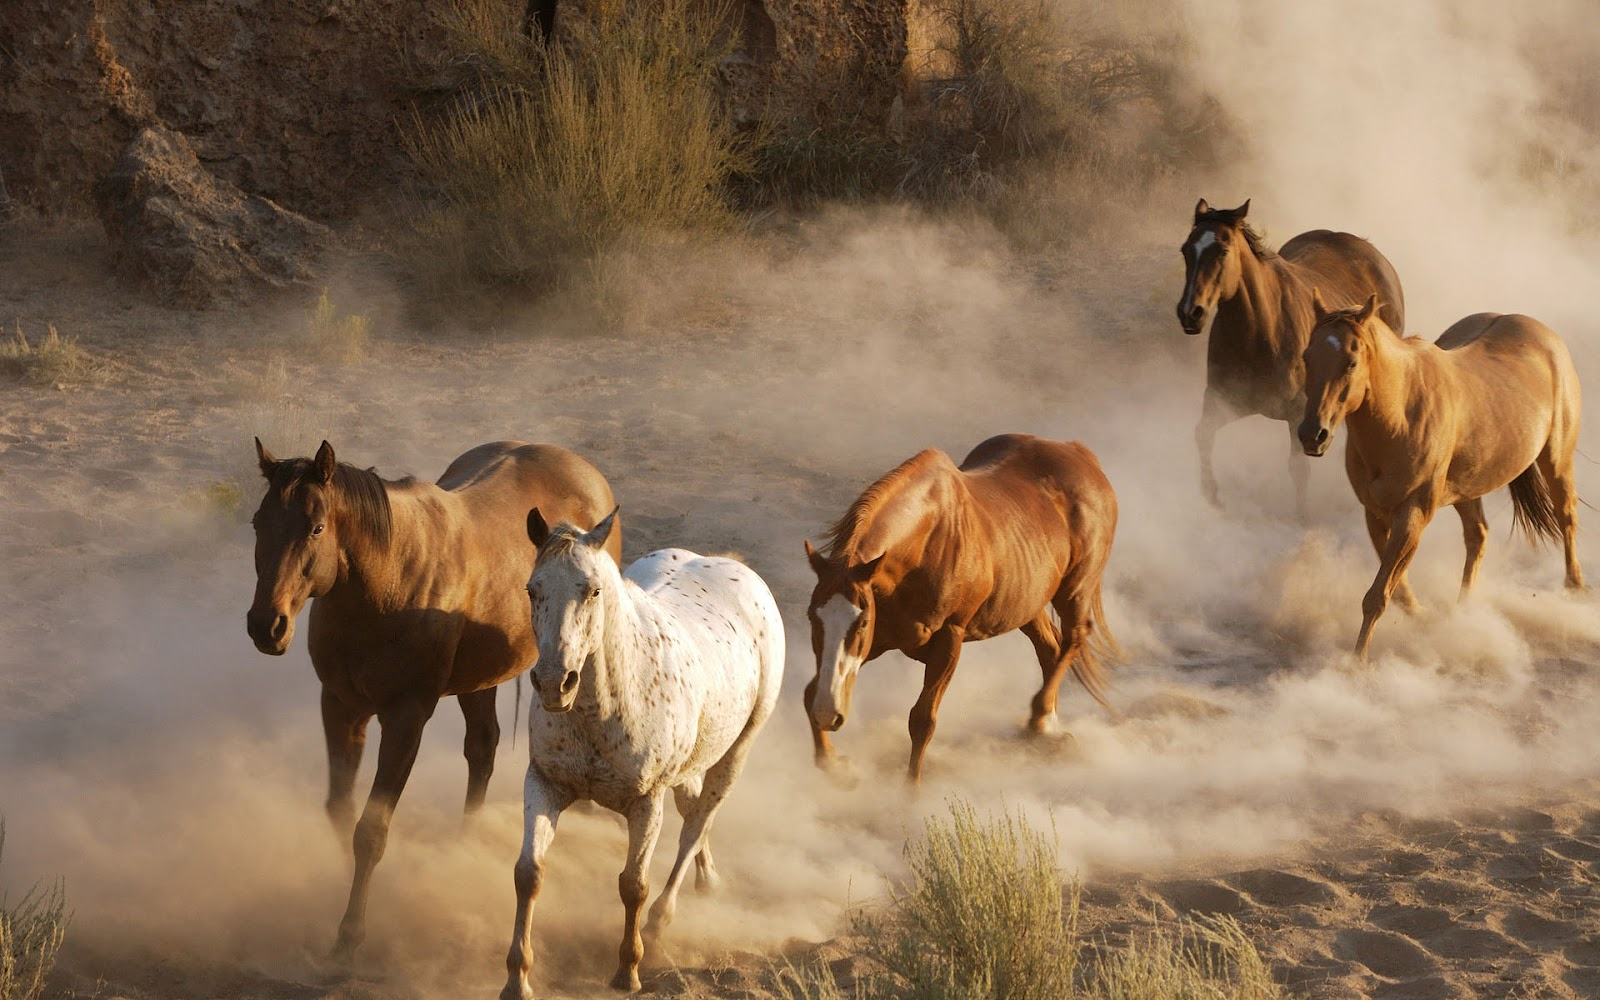 Free Download Hd Animal Wallpaper With Fast Running Horses Hd